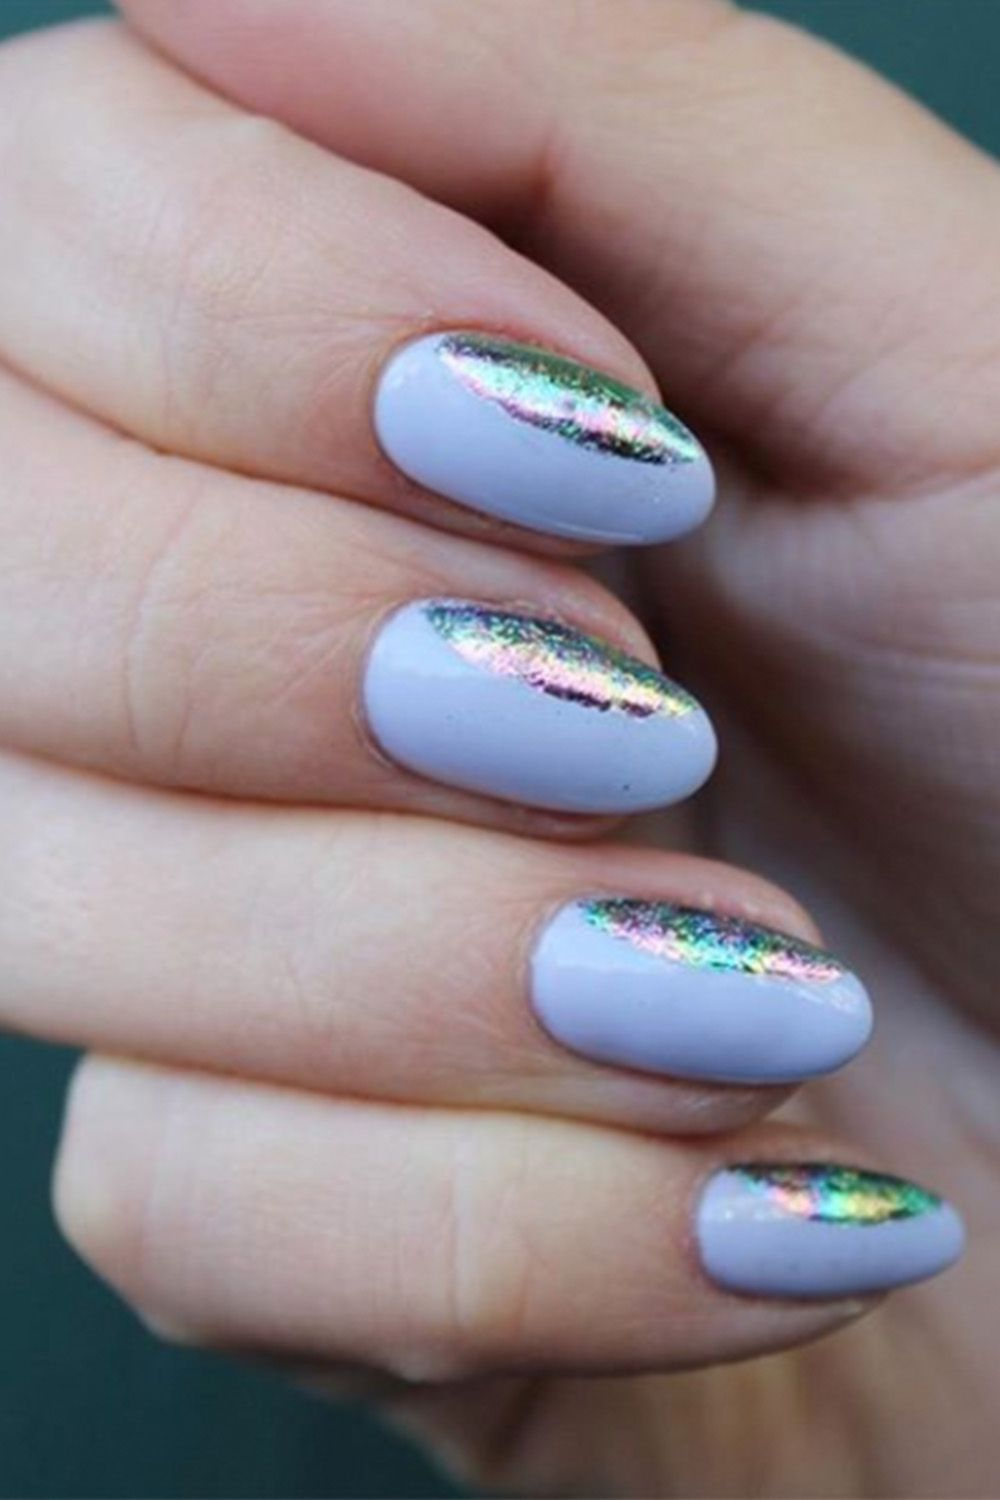 15 Almond Shaped Nail Designs , Cute Ideas for Almond Nails